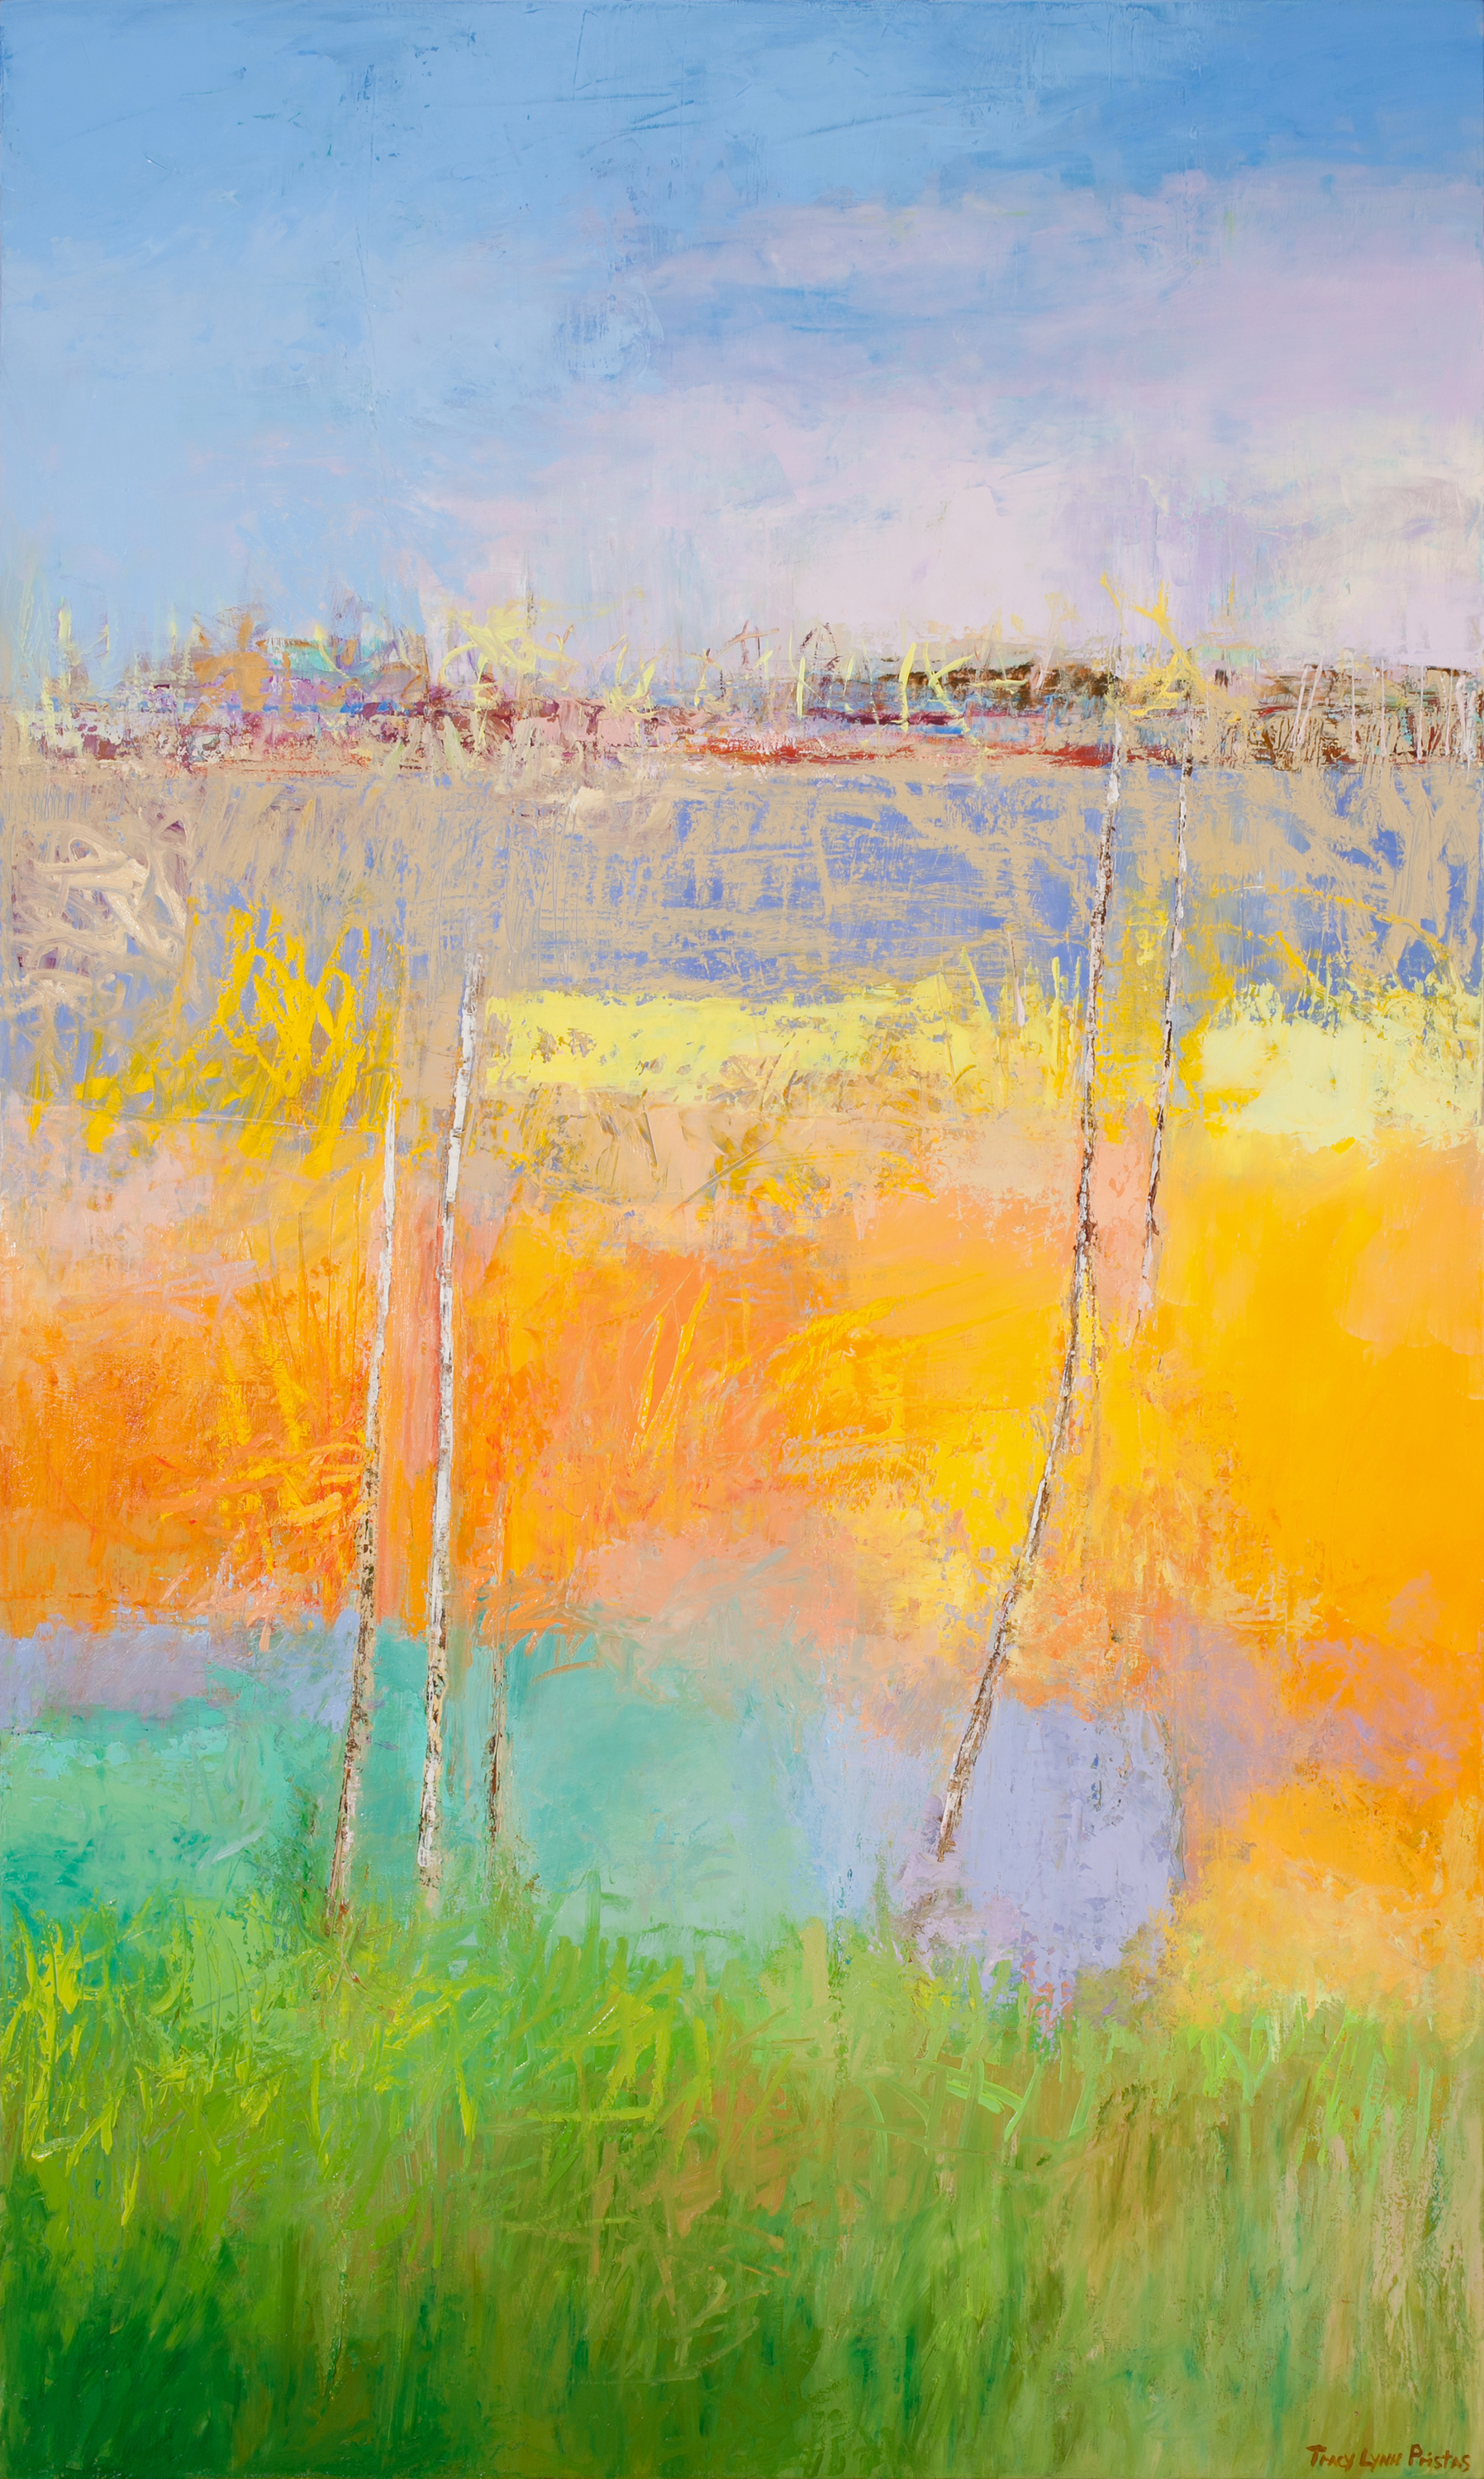 Tracy lynn pristas abstract landscape paintings for sale online 60h x 36w woven whispers va2owf